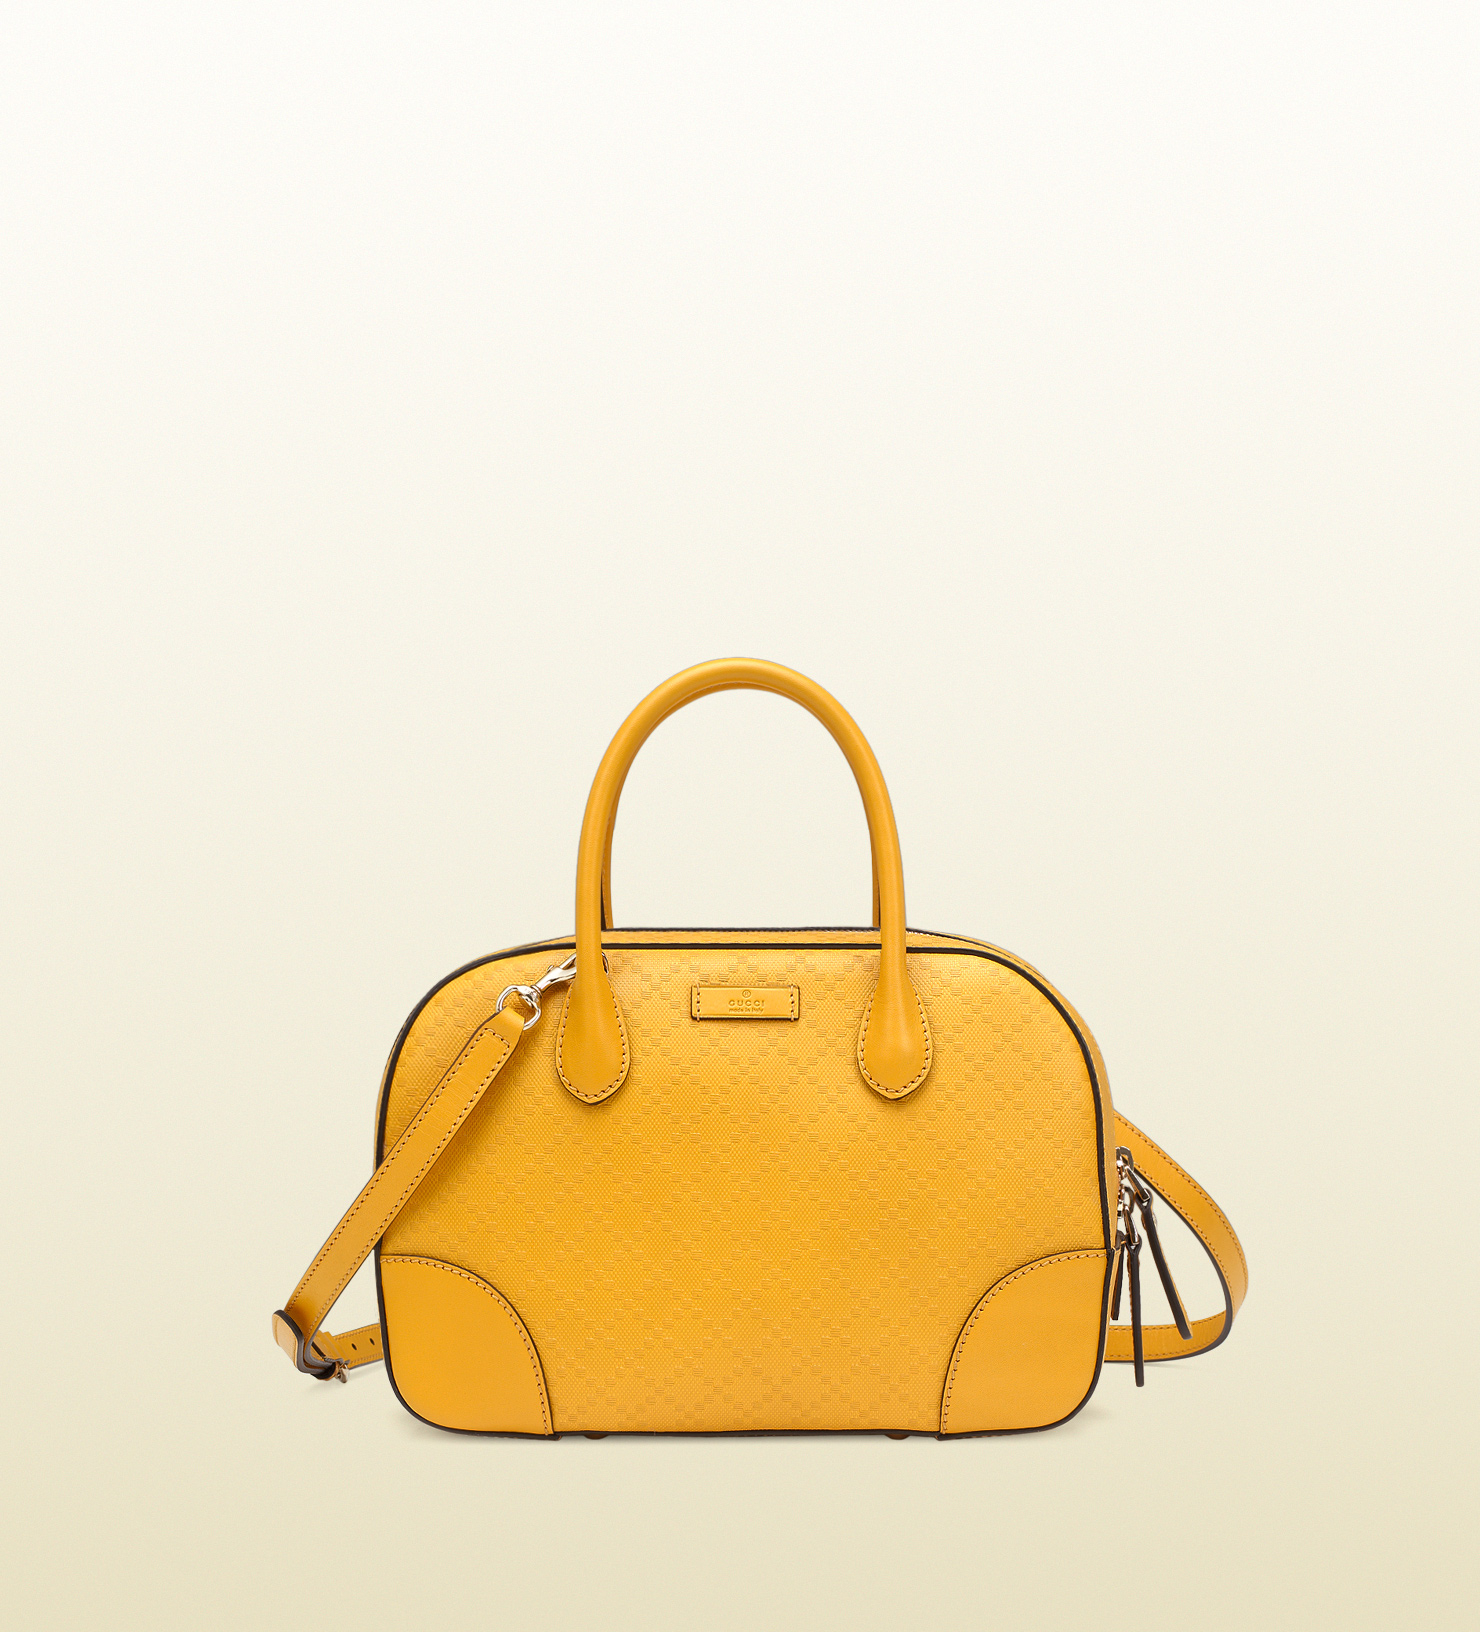 78a588c92f5 Gucci Bright Diamante Leather Top Handle Bag in Yellow - Lyst